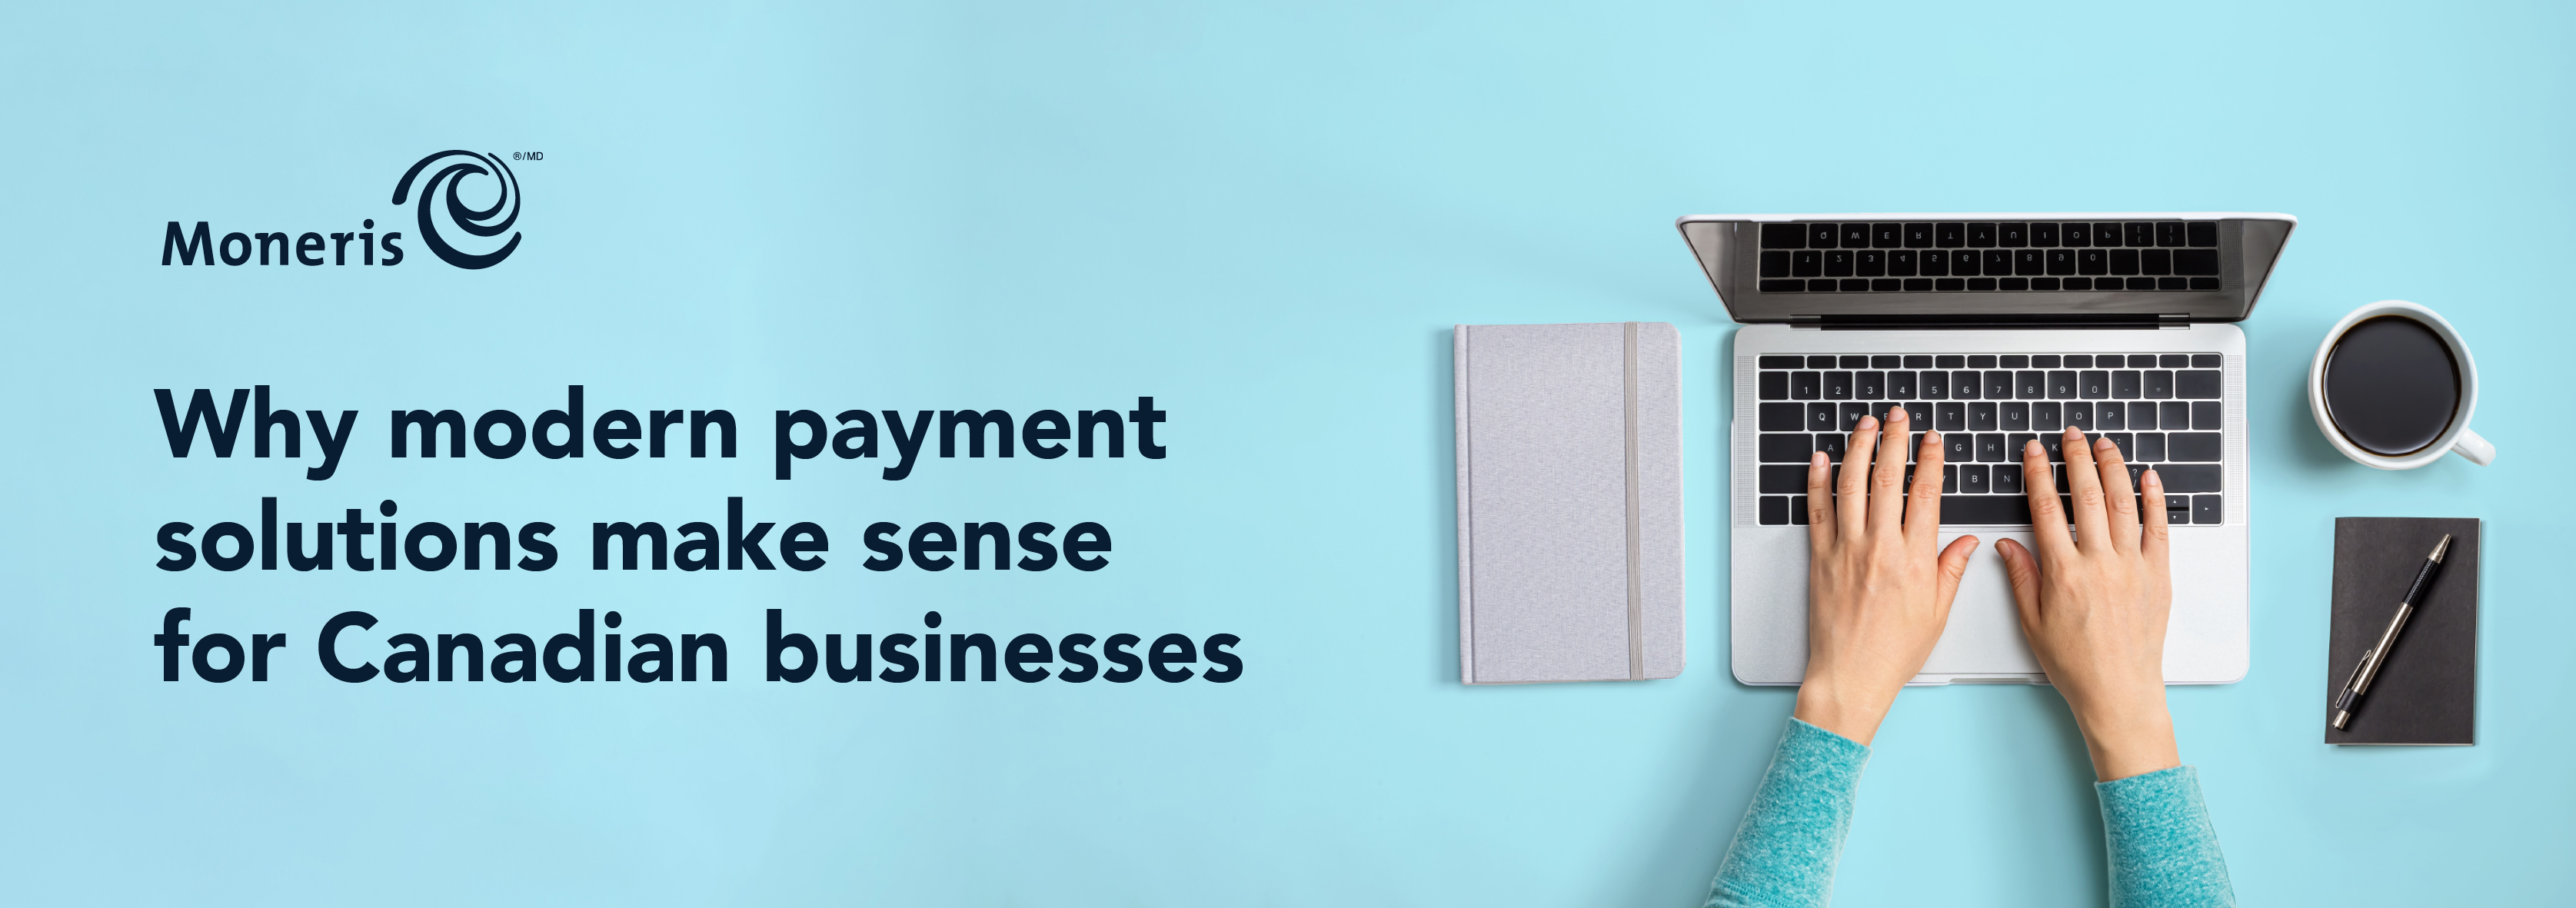 Why Modern Payment Solutions Make Sense for Canadian Companies